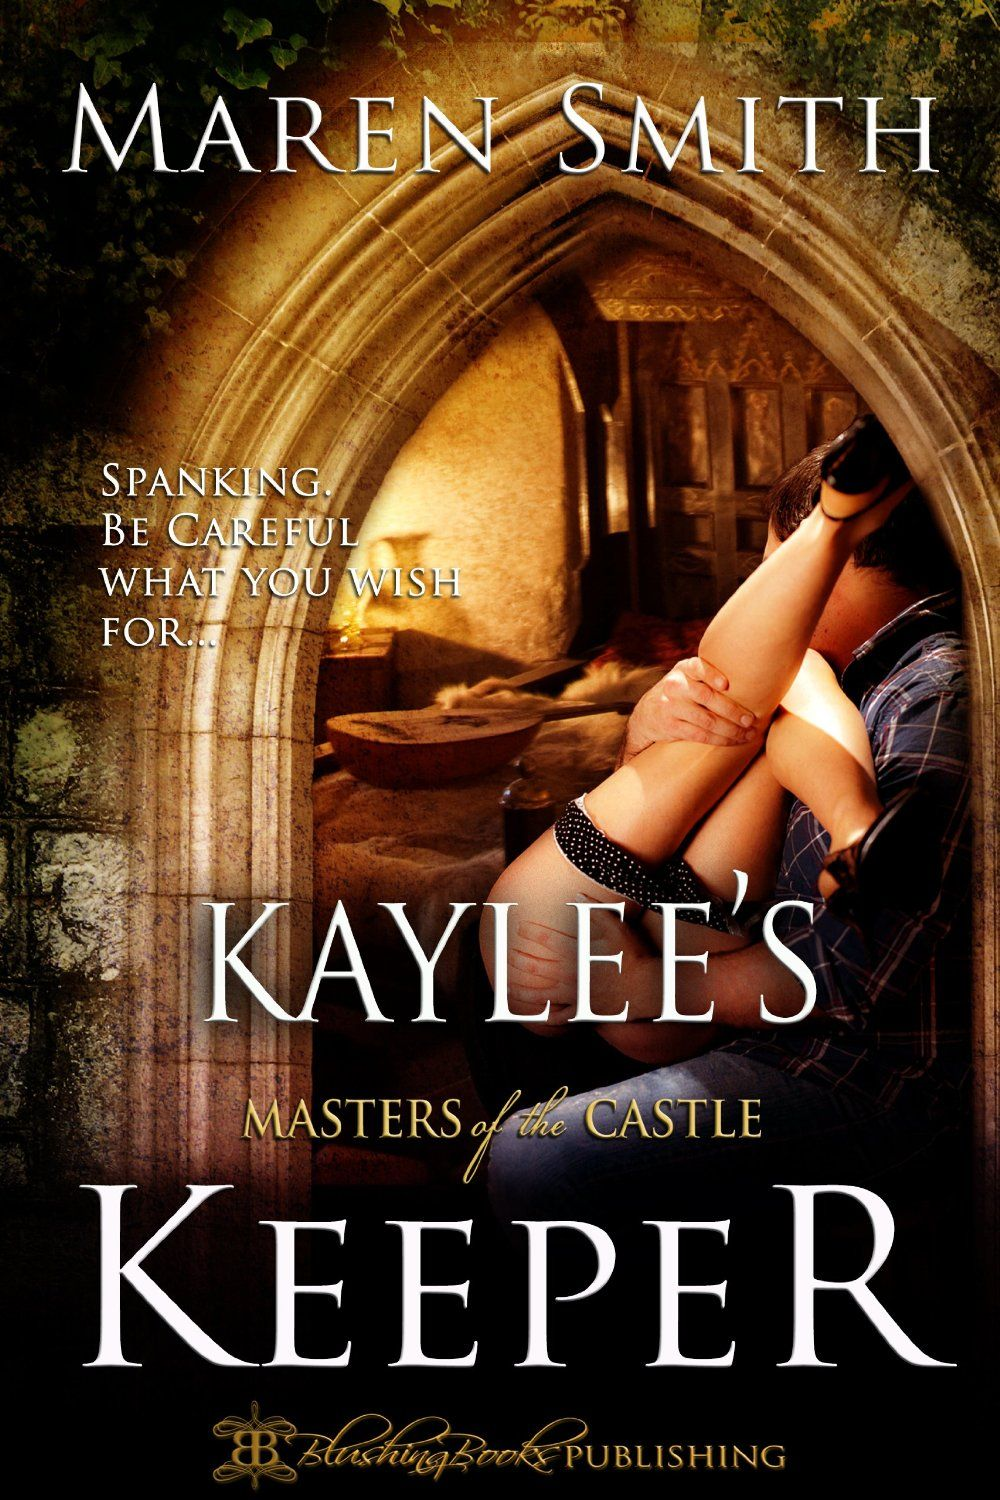 the best erotic novels to now s the o jays and novels kaylees keeper masters of the castle by maren smith vary erotic